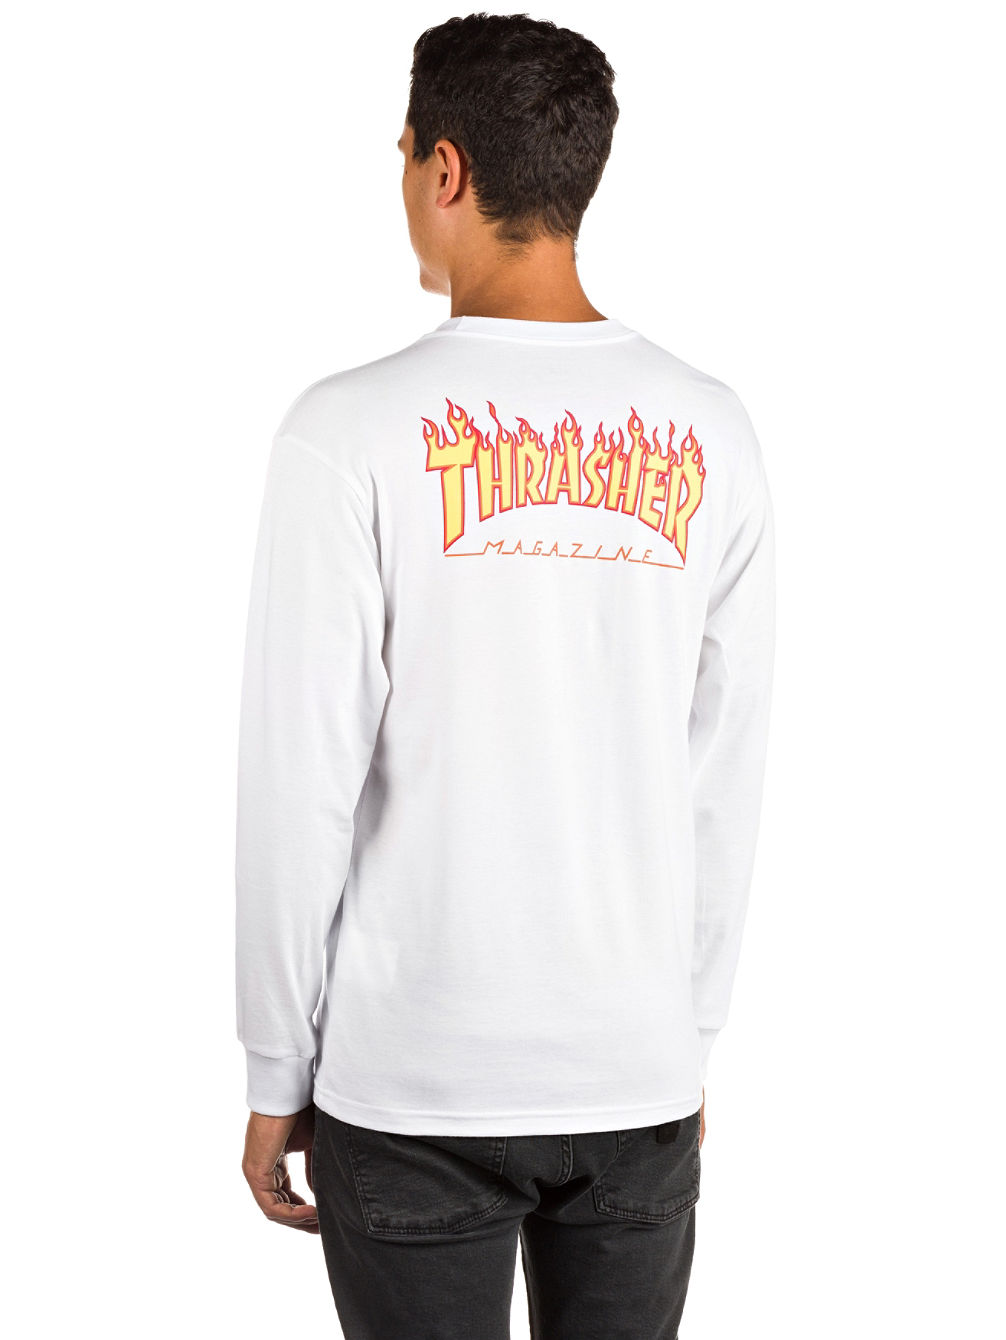 X Thrasher Checker T-Shirt LS